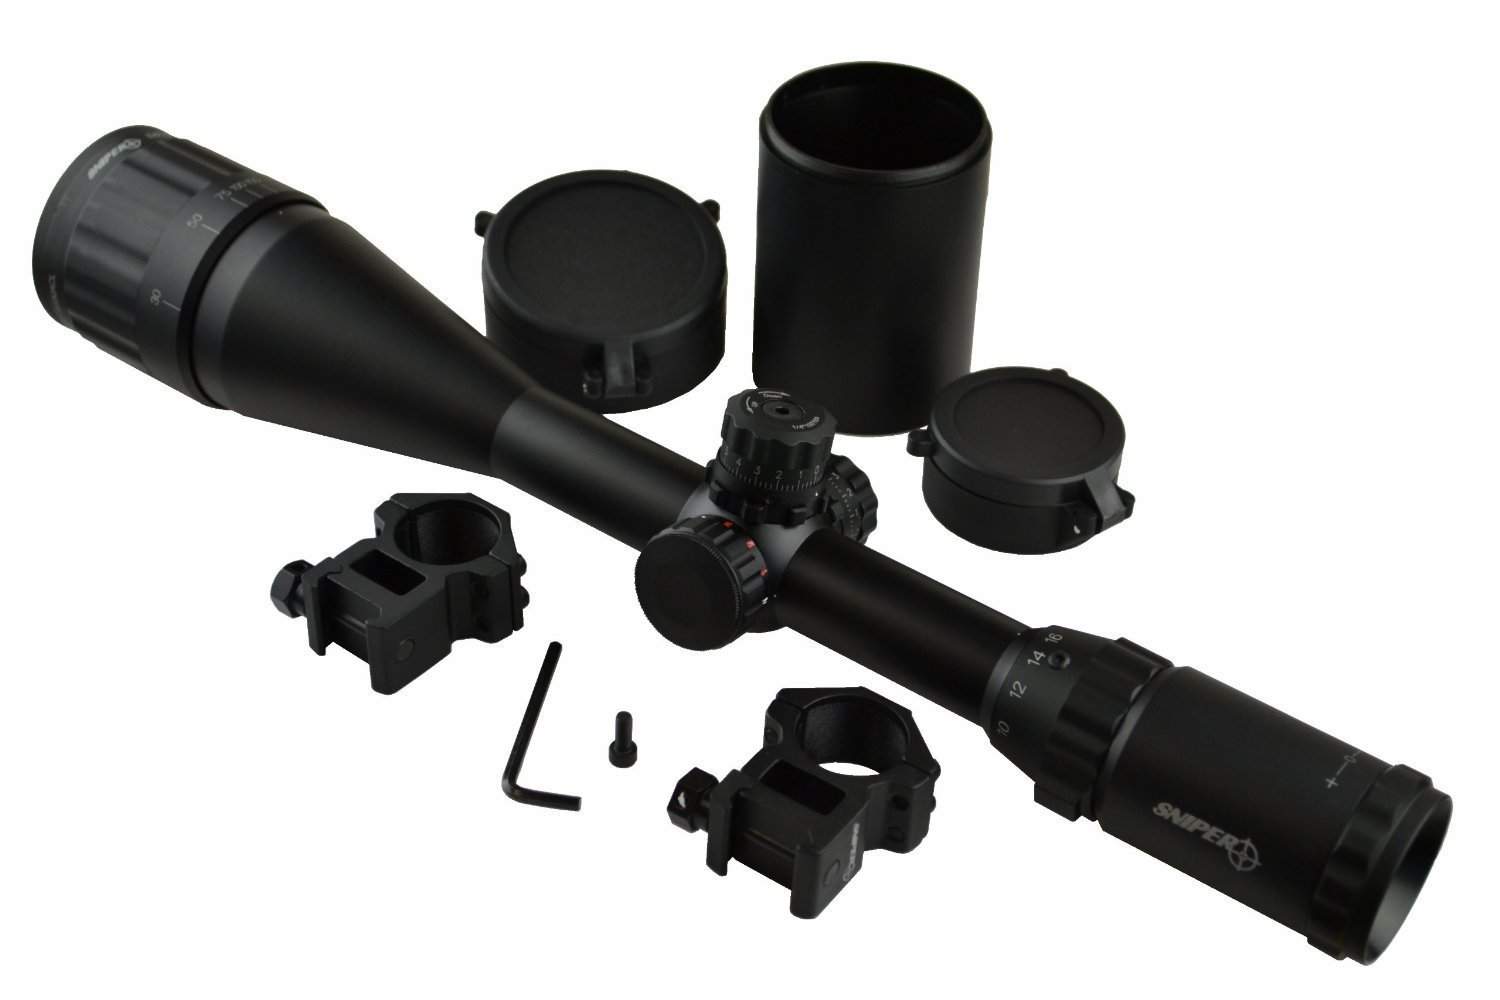 FSI Sniper 6-24x50mm Scope2